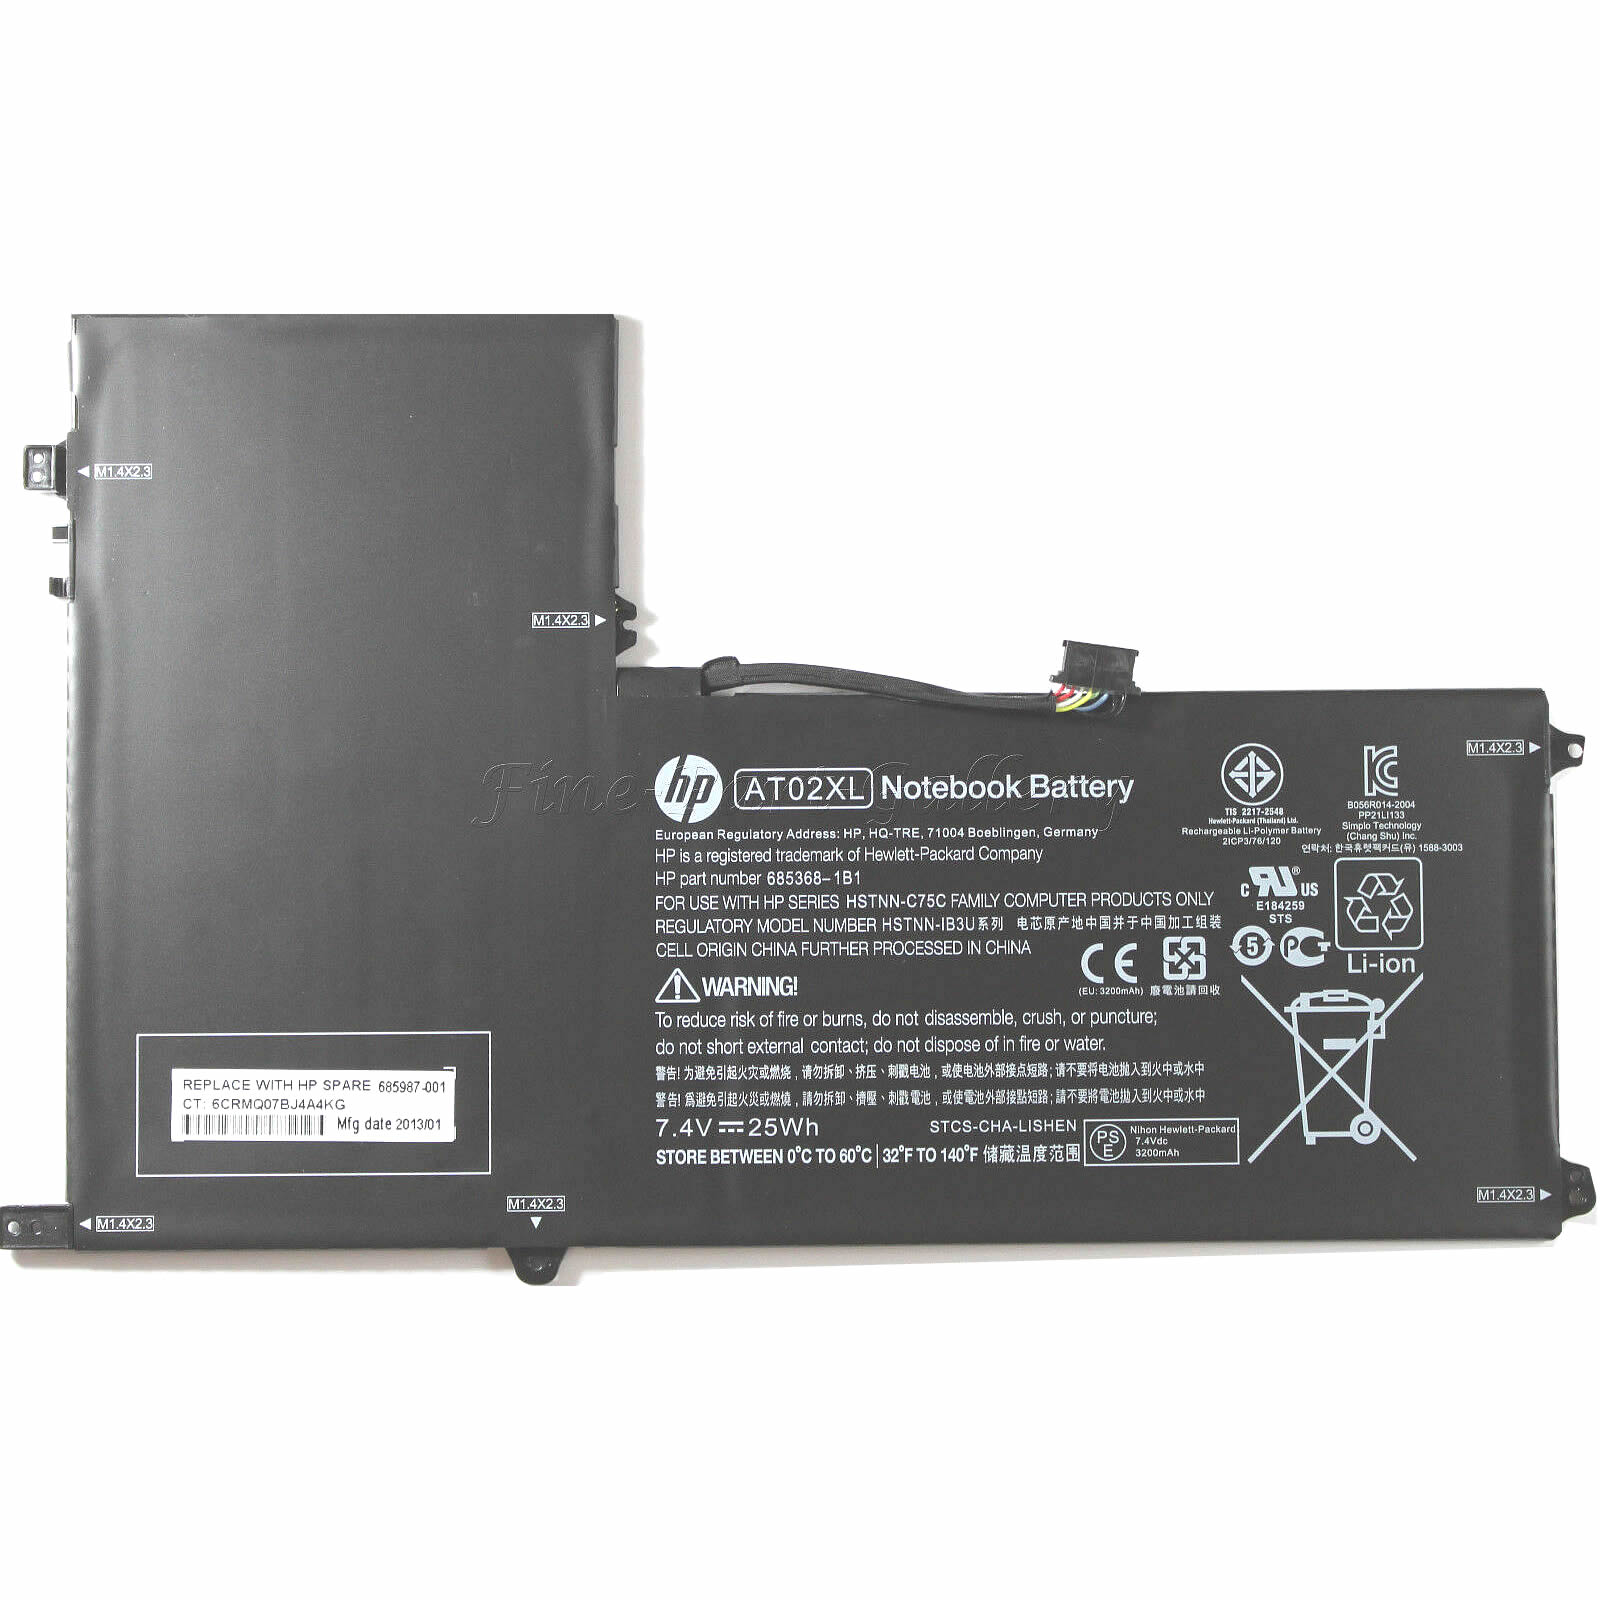 HP HSTNN-C75C AO02XL 2ICP4-74/120 batterie originale 7.4V 3995mAh,31Wh pour ordinateur portable HP ElitePad 1000 G2 J4M73PA, ElitePad 1000 G2 E4S57AV séries